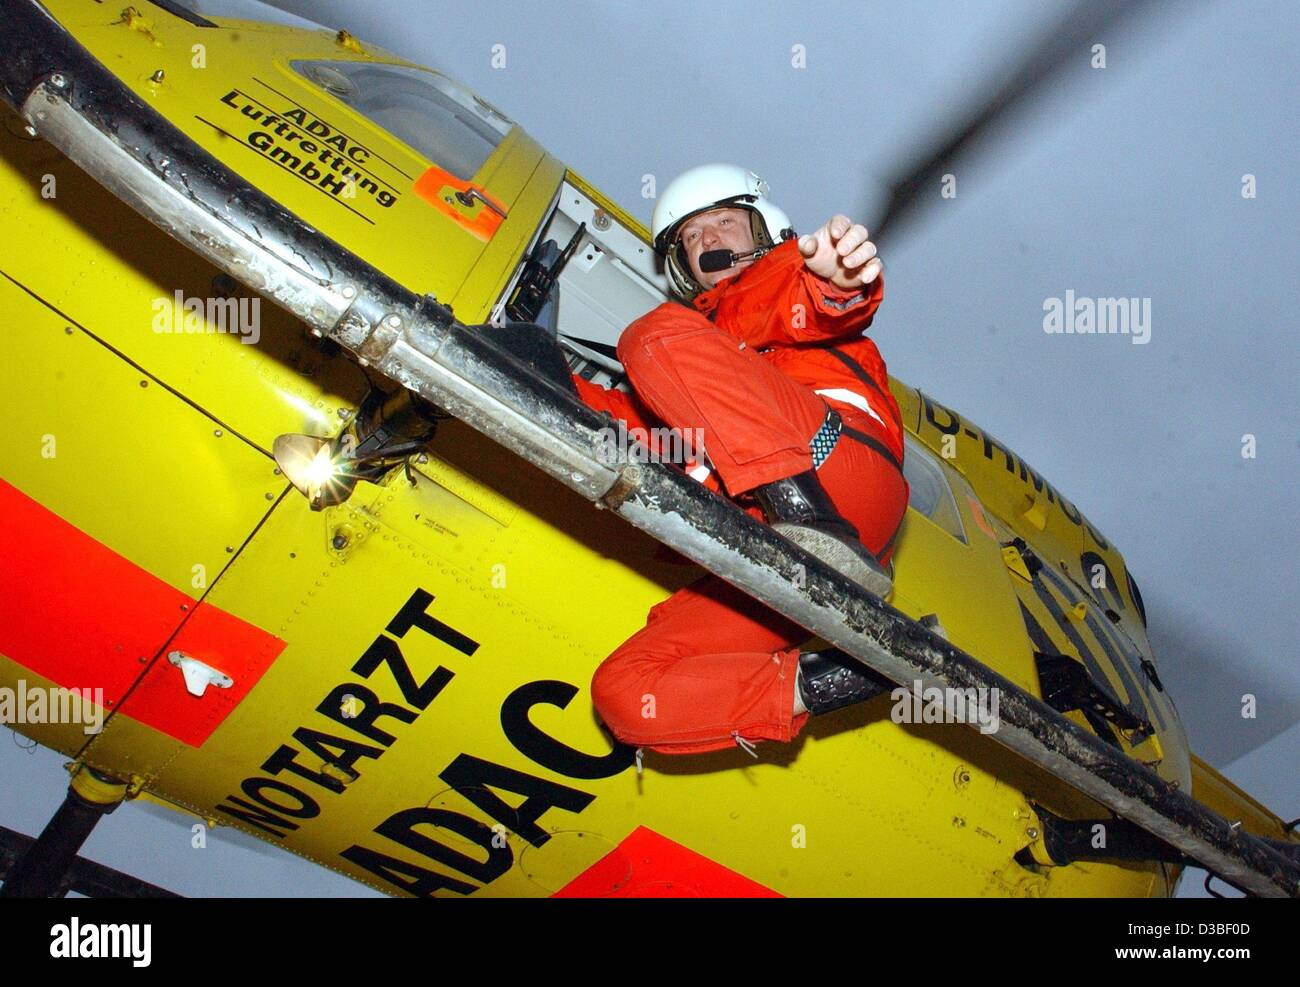 (dpa) - Rescue worker Daniel Gerth of the German auto club ADAC stands on the skids of the rescue helicopter Christoph - Stock Image